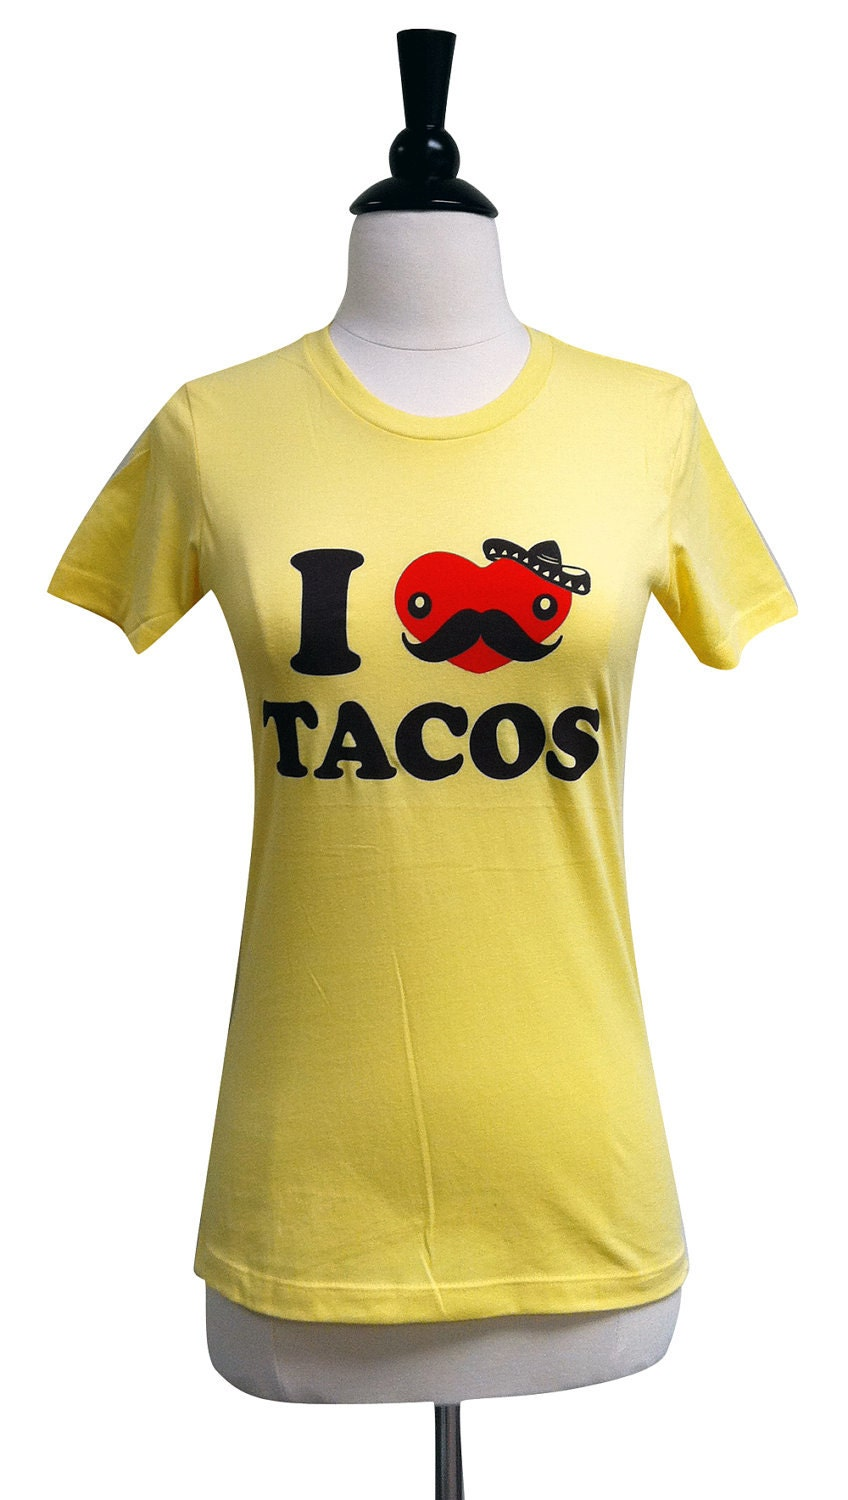 TACO T-Shirt - I Love Tacos FUNNY Ladies Shirt - (Available in sizes S, M, L, XL)